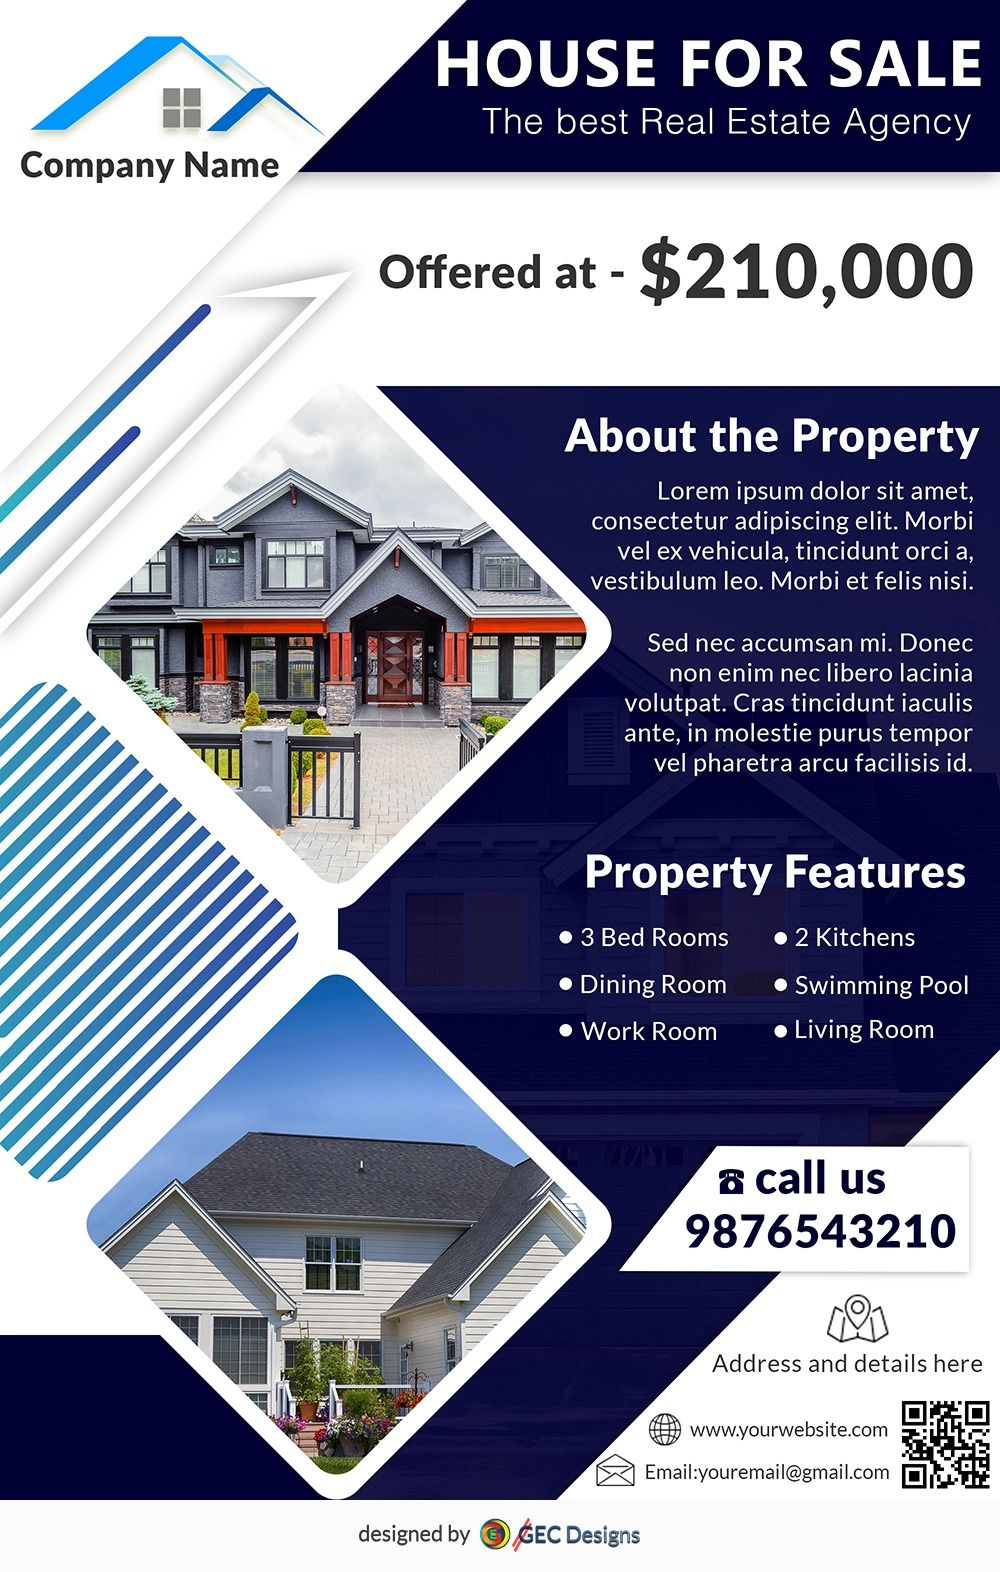 006 Archaicawful House For Sale Flyer Template Highest Clarity  Free Real Estate Example By OwnerFull